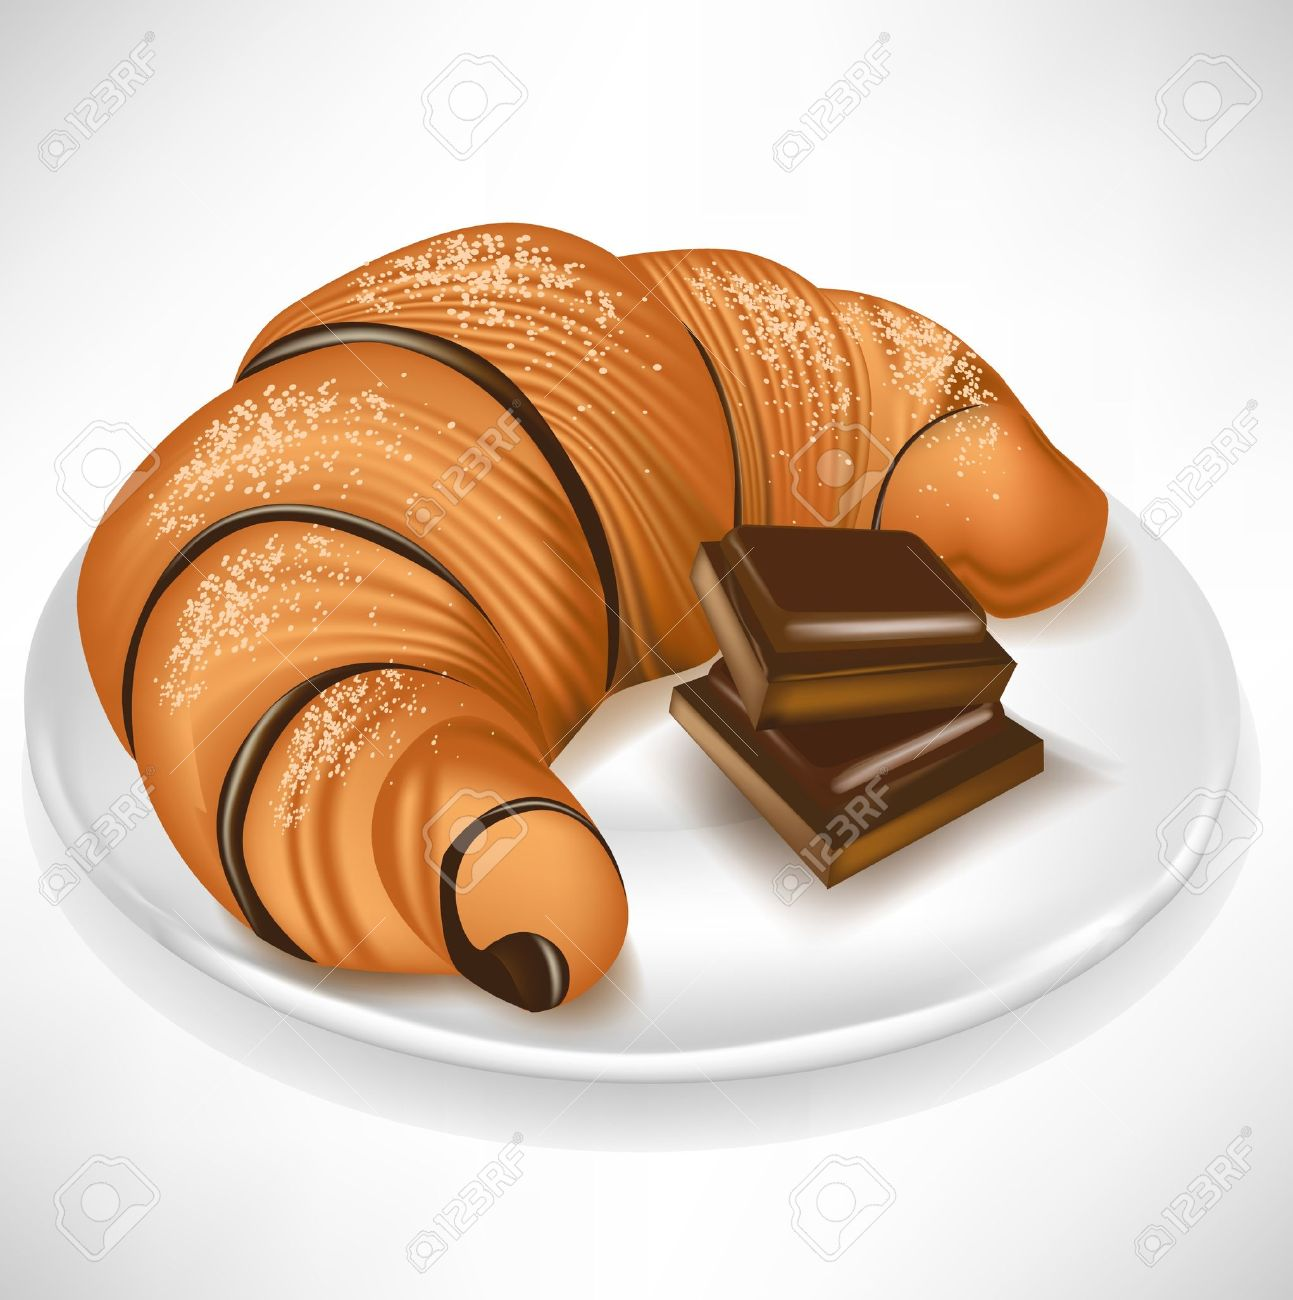 Croissant Chocolate Stock Photos & Pictures. Royalty Free ...